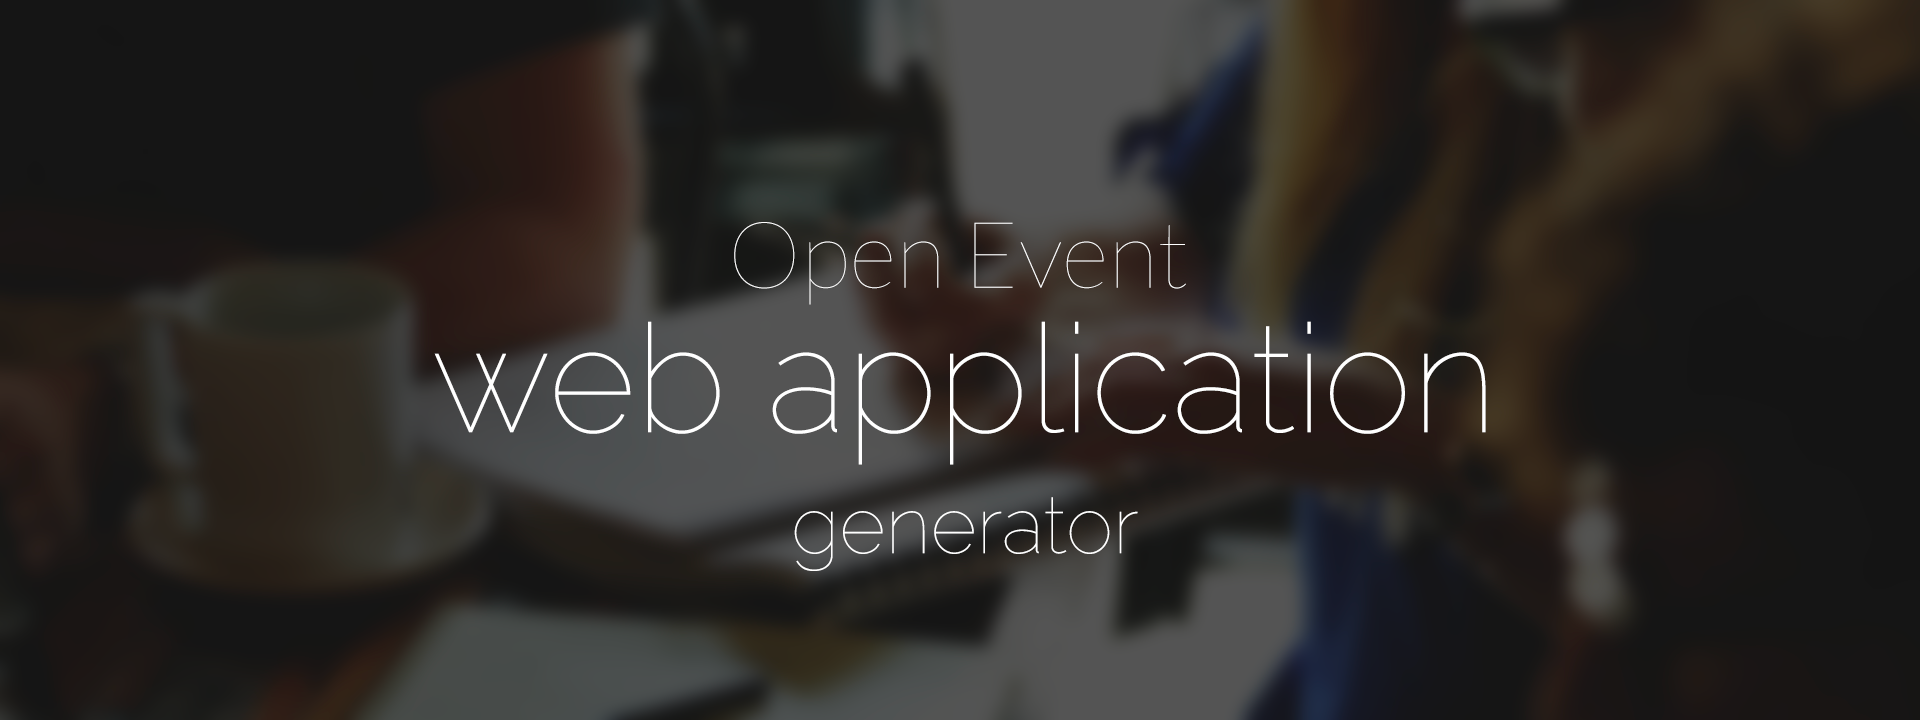 Open Event webapp